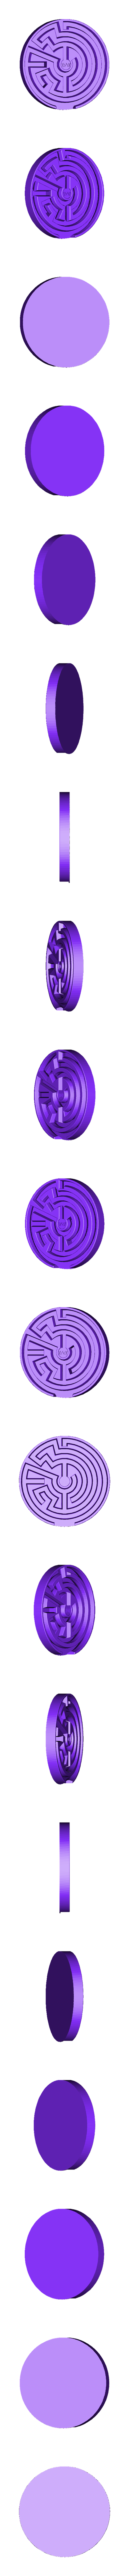 maze_small.stl Download free STL file Devilish Westworld sliding puzzle • Object to 3D print, evgbourd